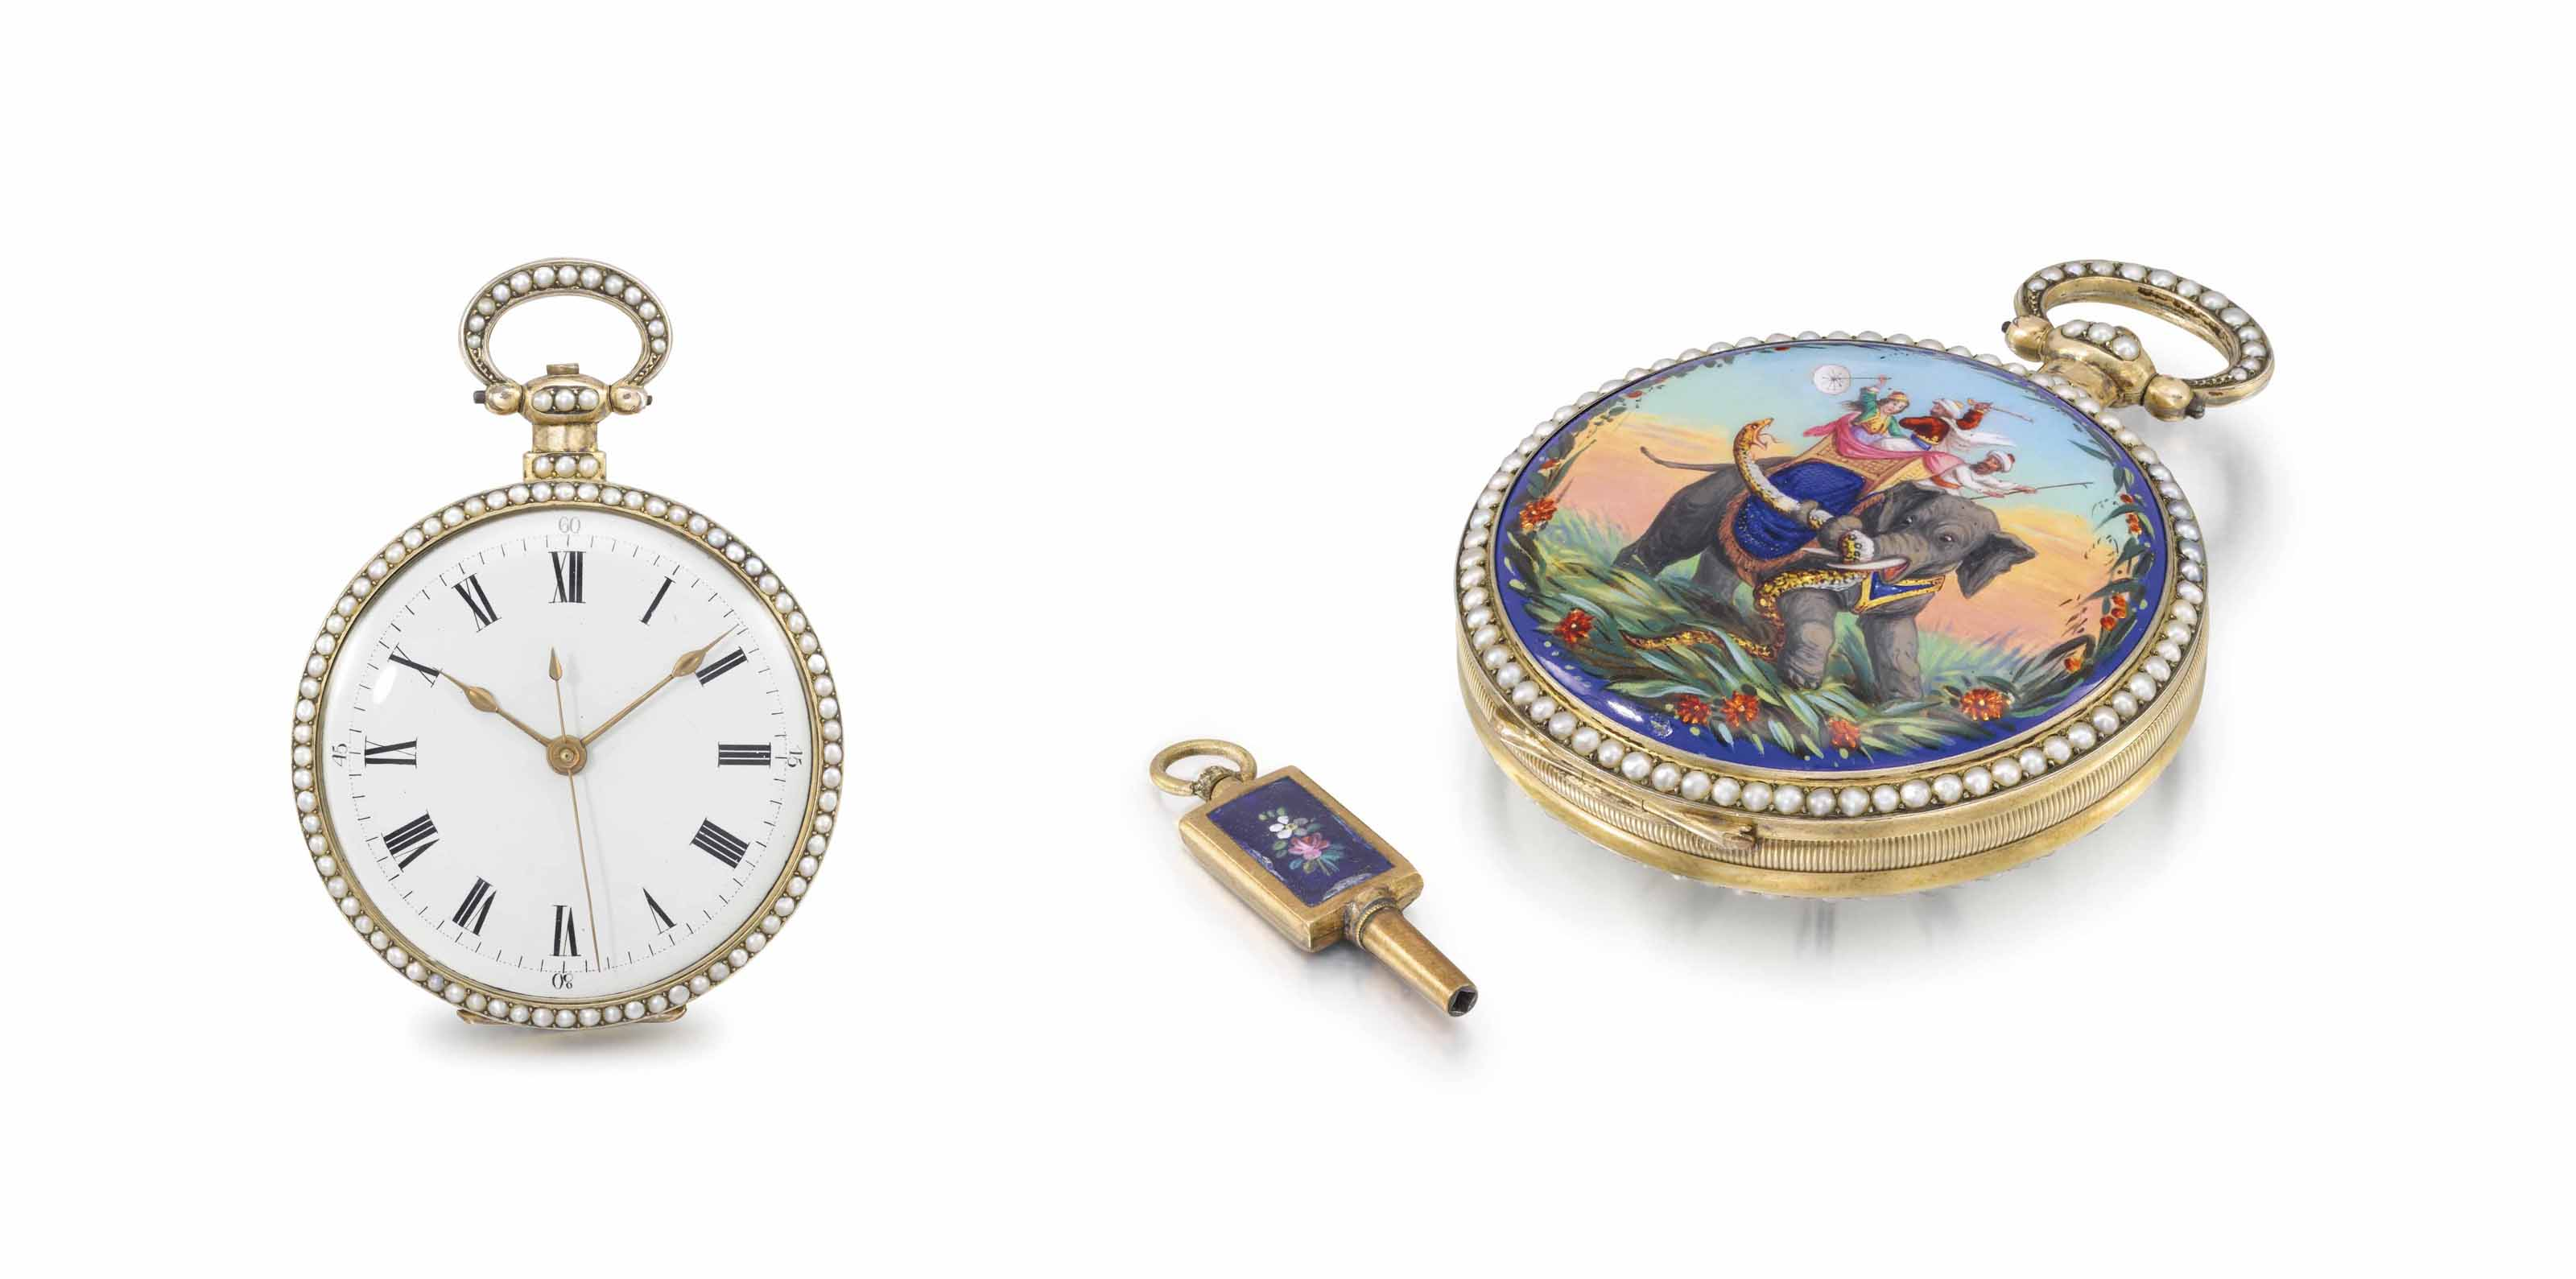 Edouard Juvet. A fine, rare and attractive silver gilt, enamel and pearl-set centre seconds duplex watch, made for the Chinese market, with key